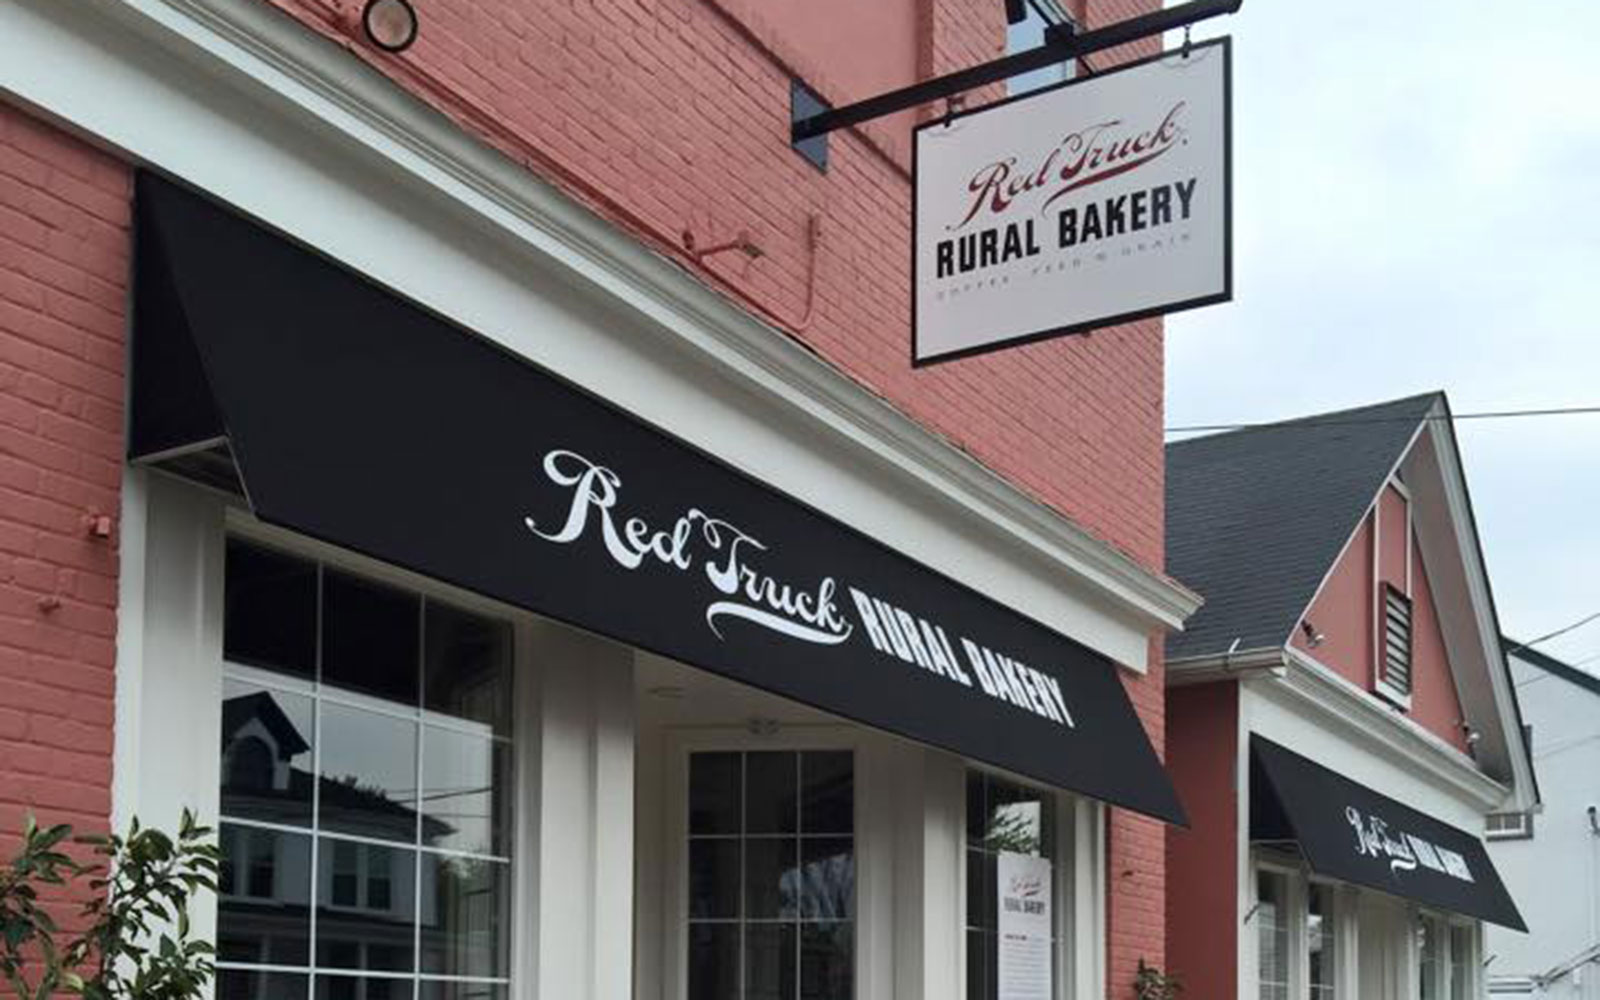 The 15 Best Small-Town Bakeries: Red Truck Bakery in Warrenton, Virginia